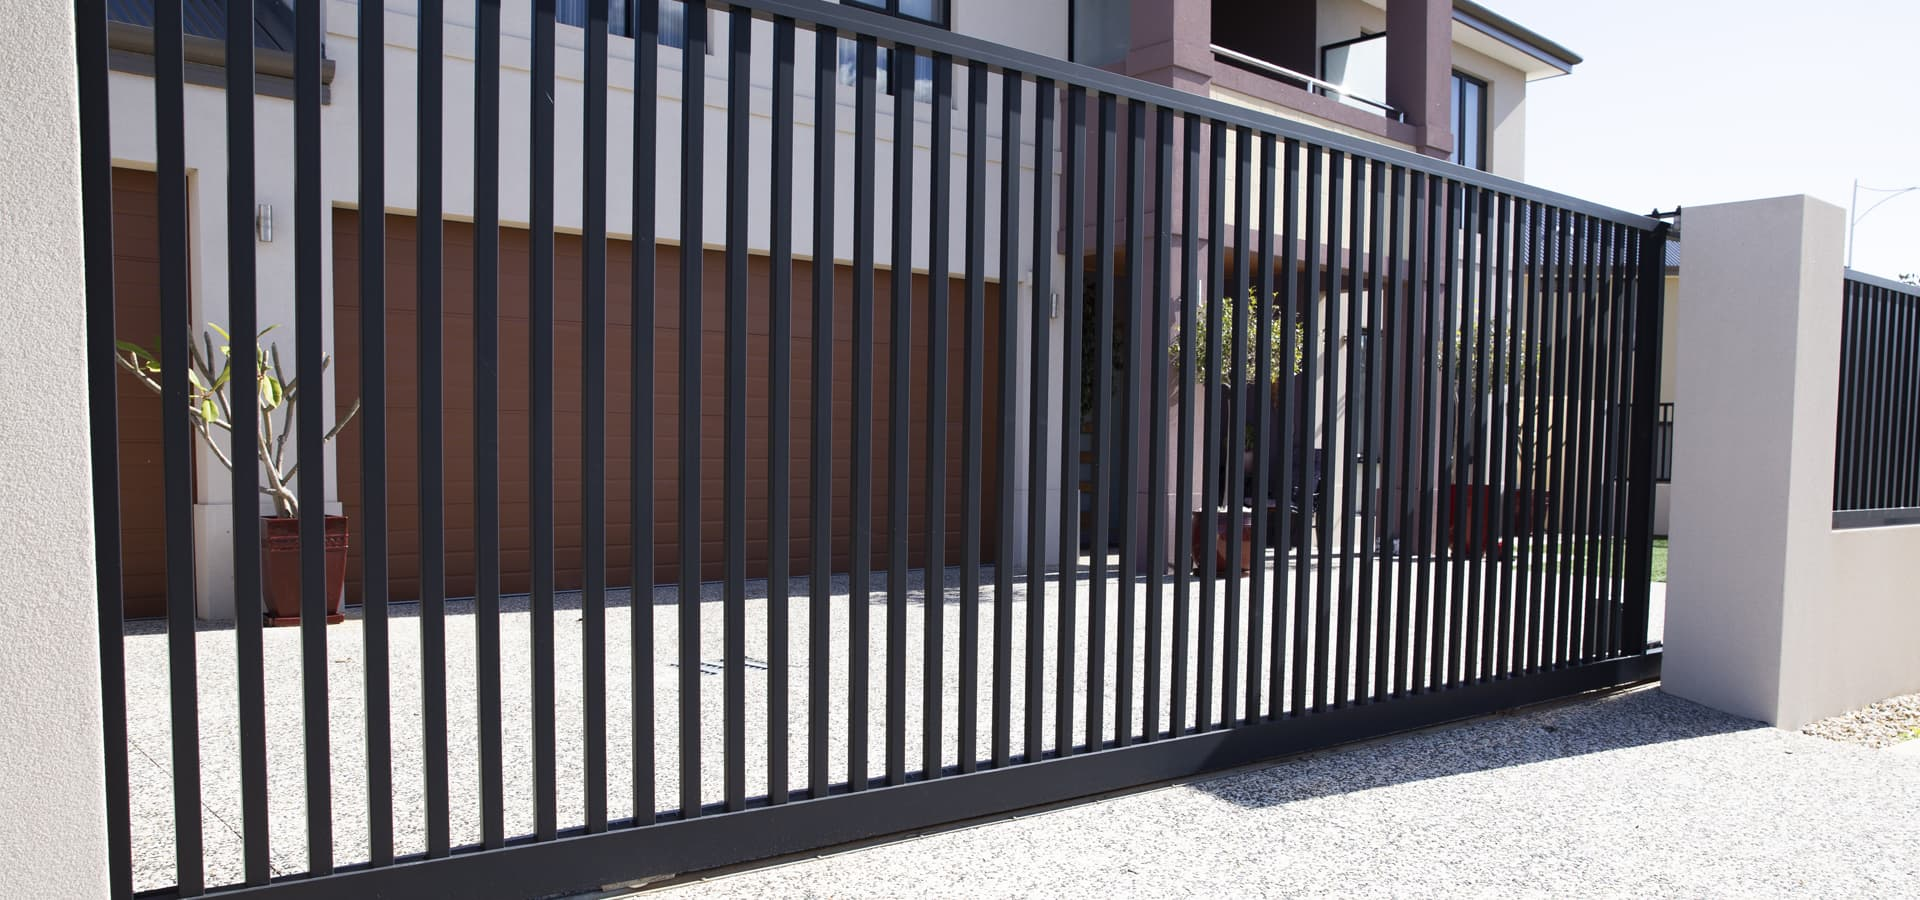 Why You Should Choose Gate World For All Your Security Needs